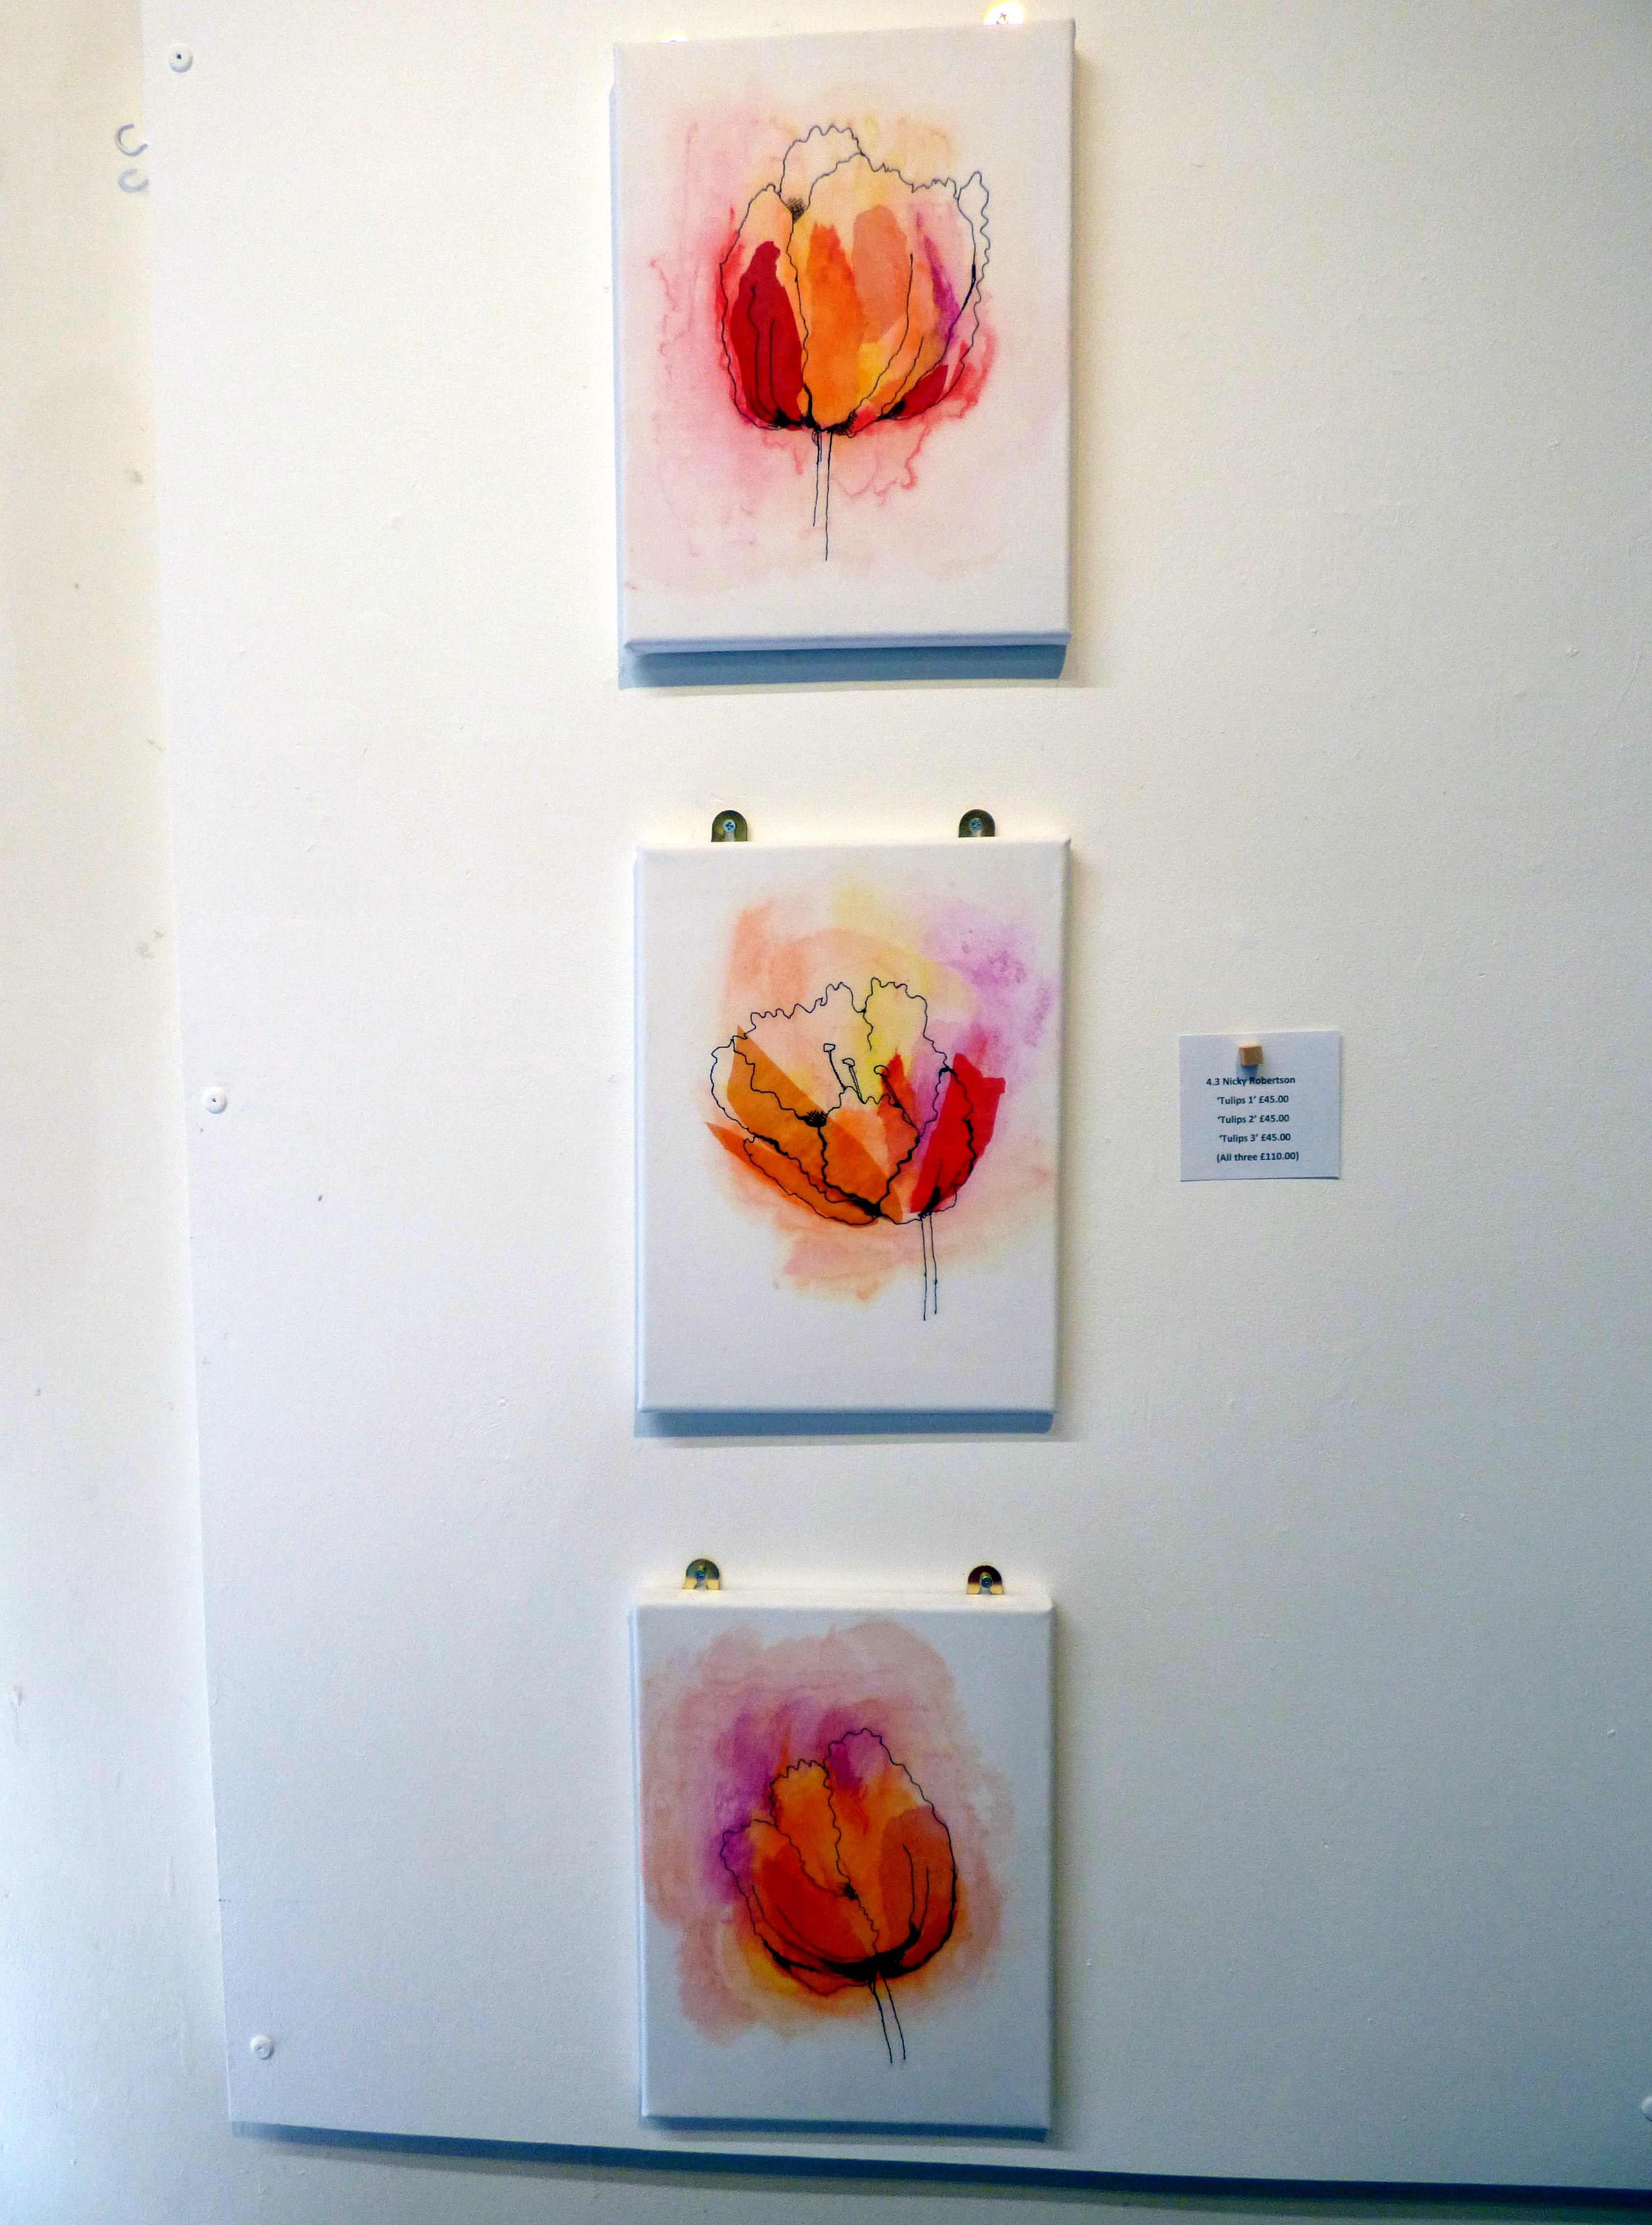 TULIPS 1,2,3 by Nicky Robertson, Natural Progression Group, July 2021